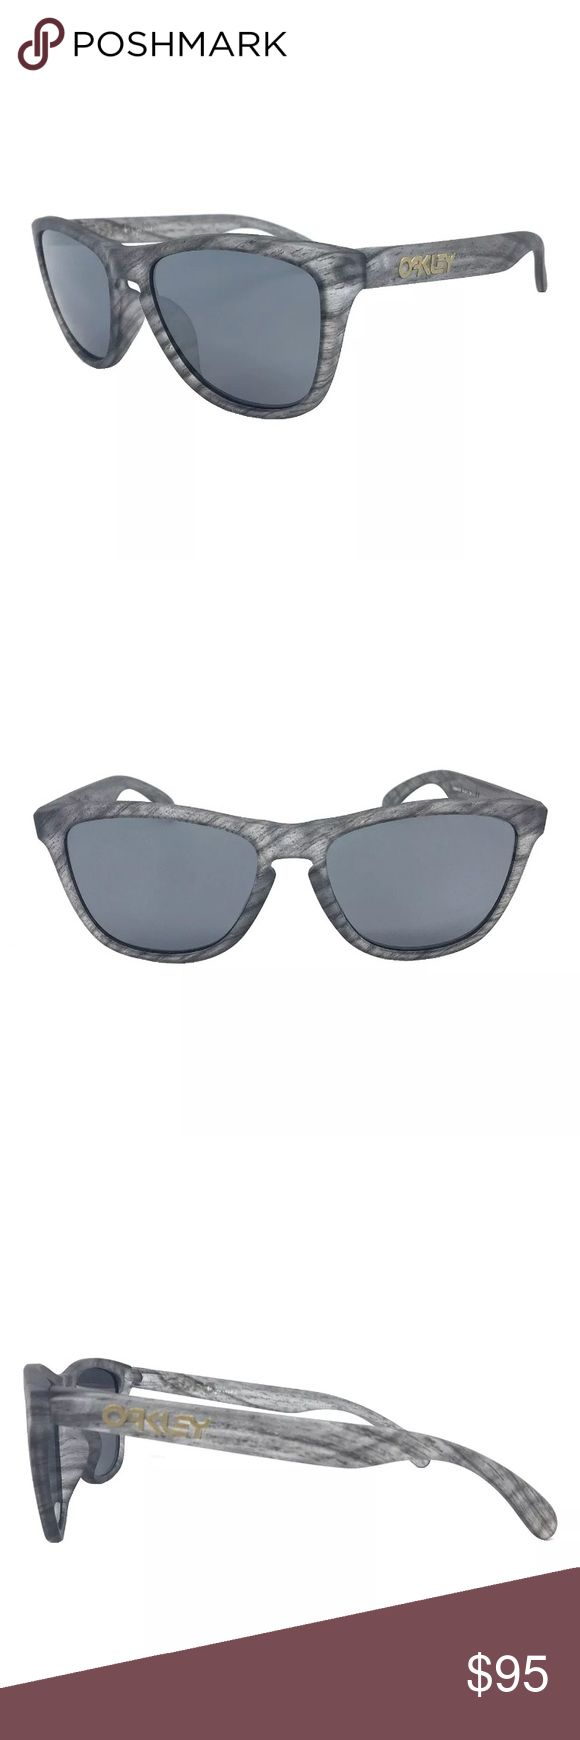 Oakley frogskins sunglasses NIB Oakley frogskins sunglasses  Clear matte woodgrain  Absolutely perfect condition  No scratches...took out to take pics only Oakley Accessories Sunglasses